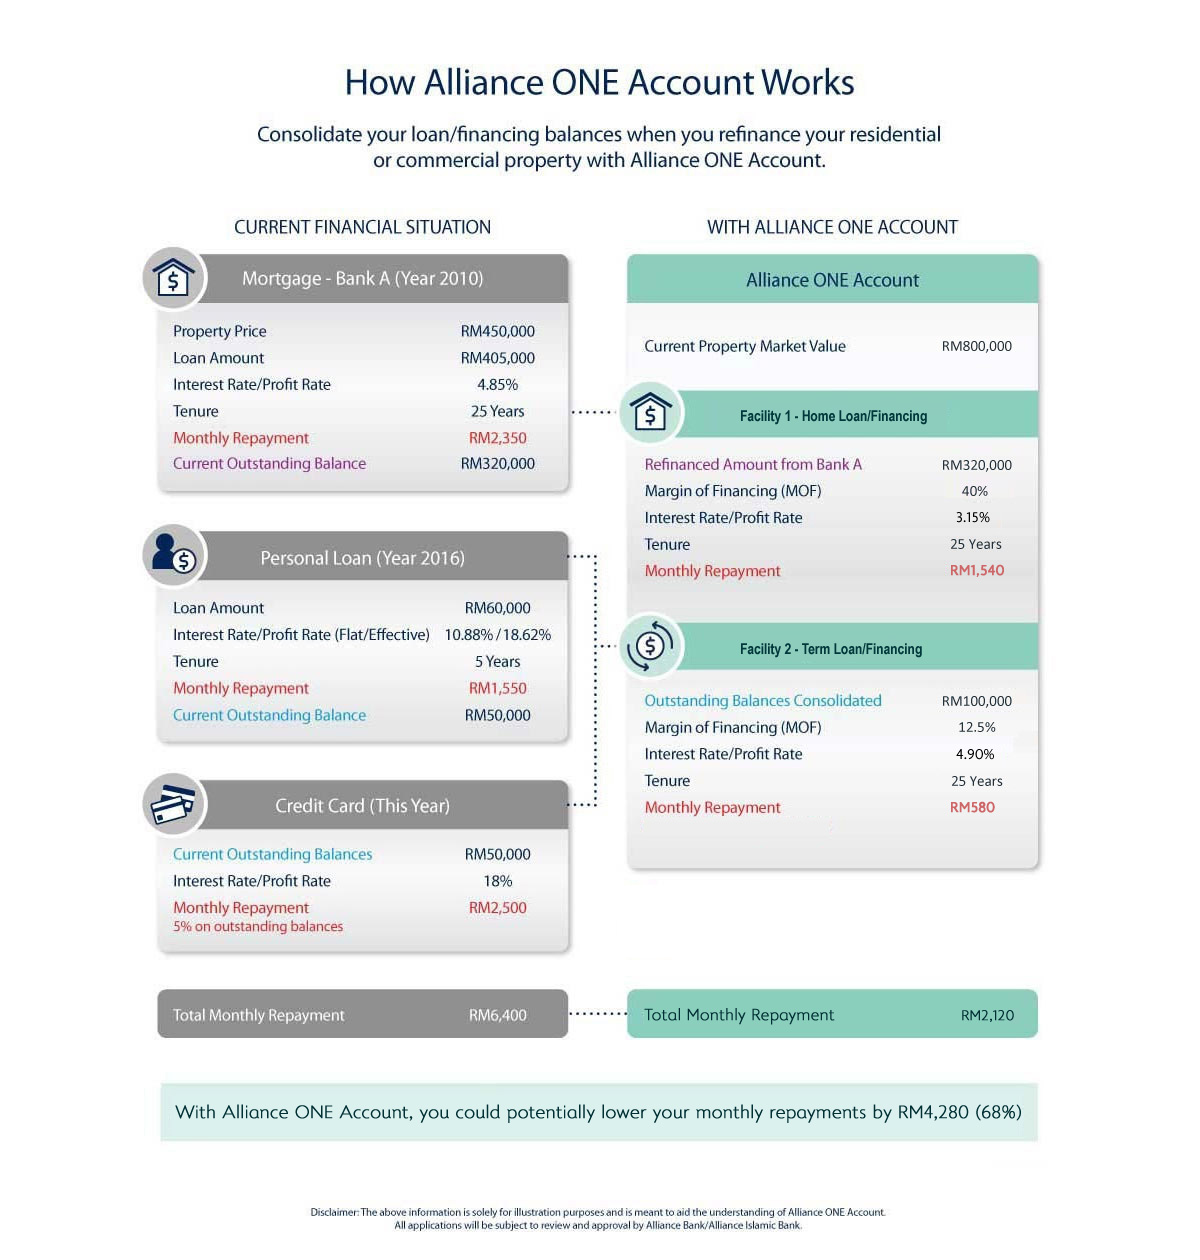 How Alliance ONE Account Works